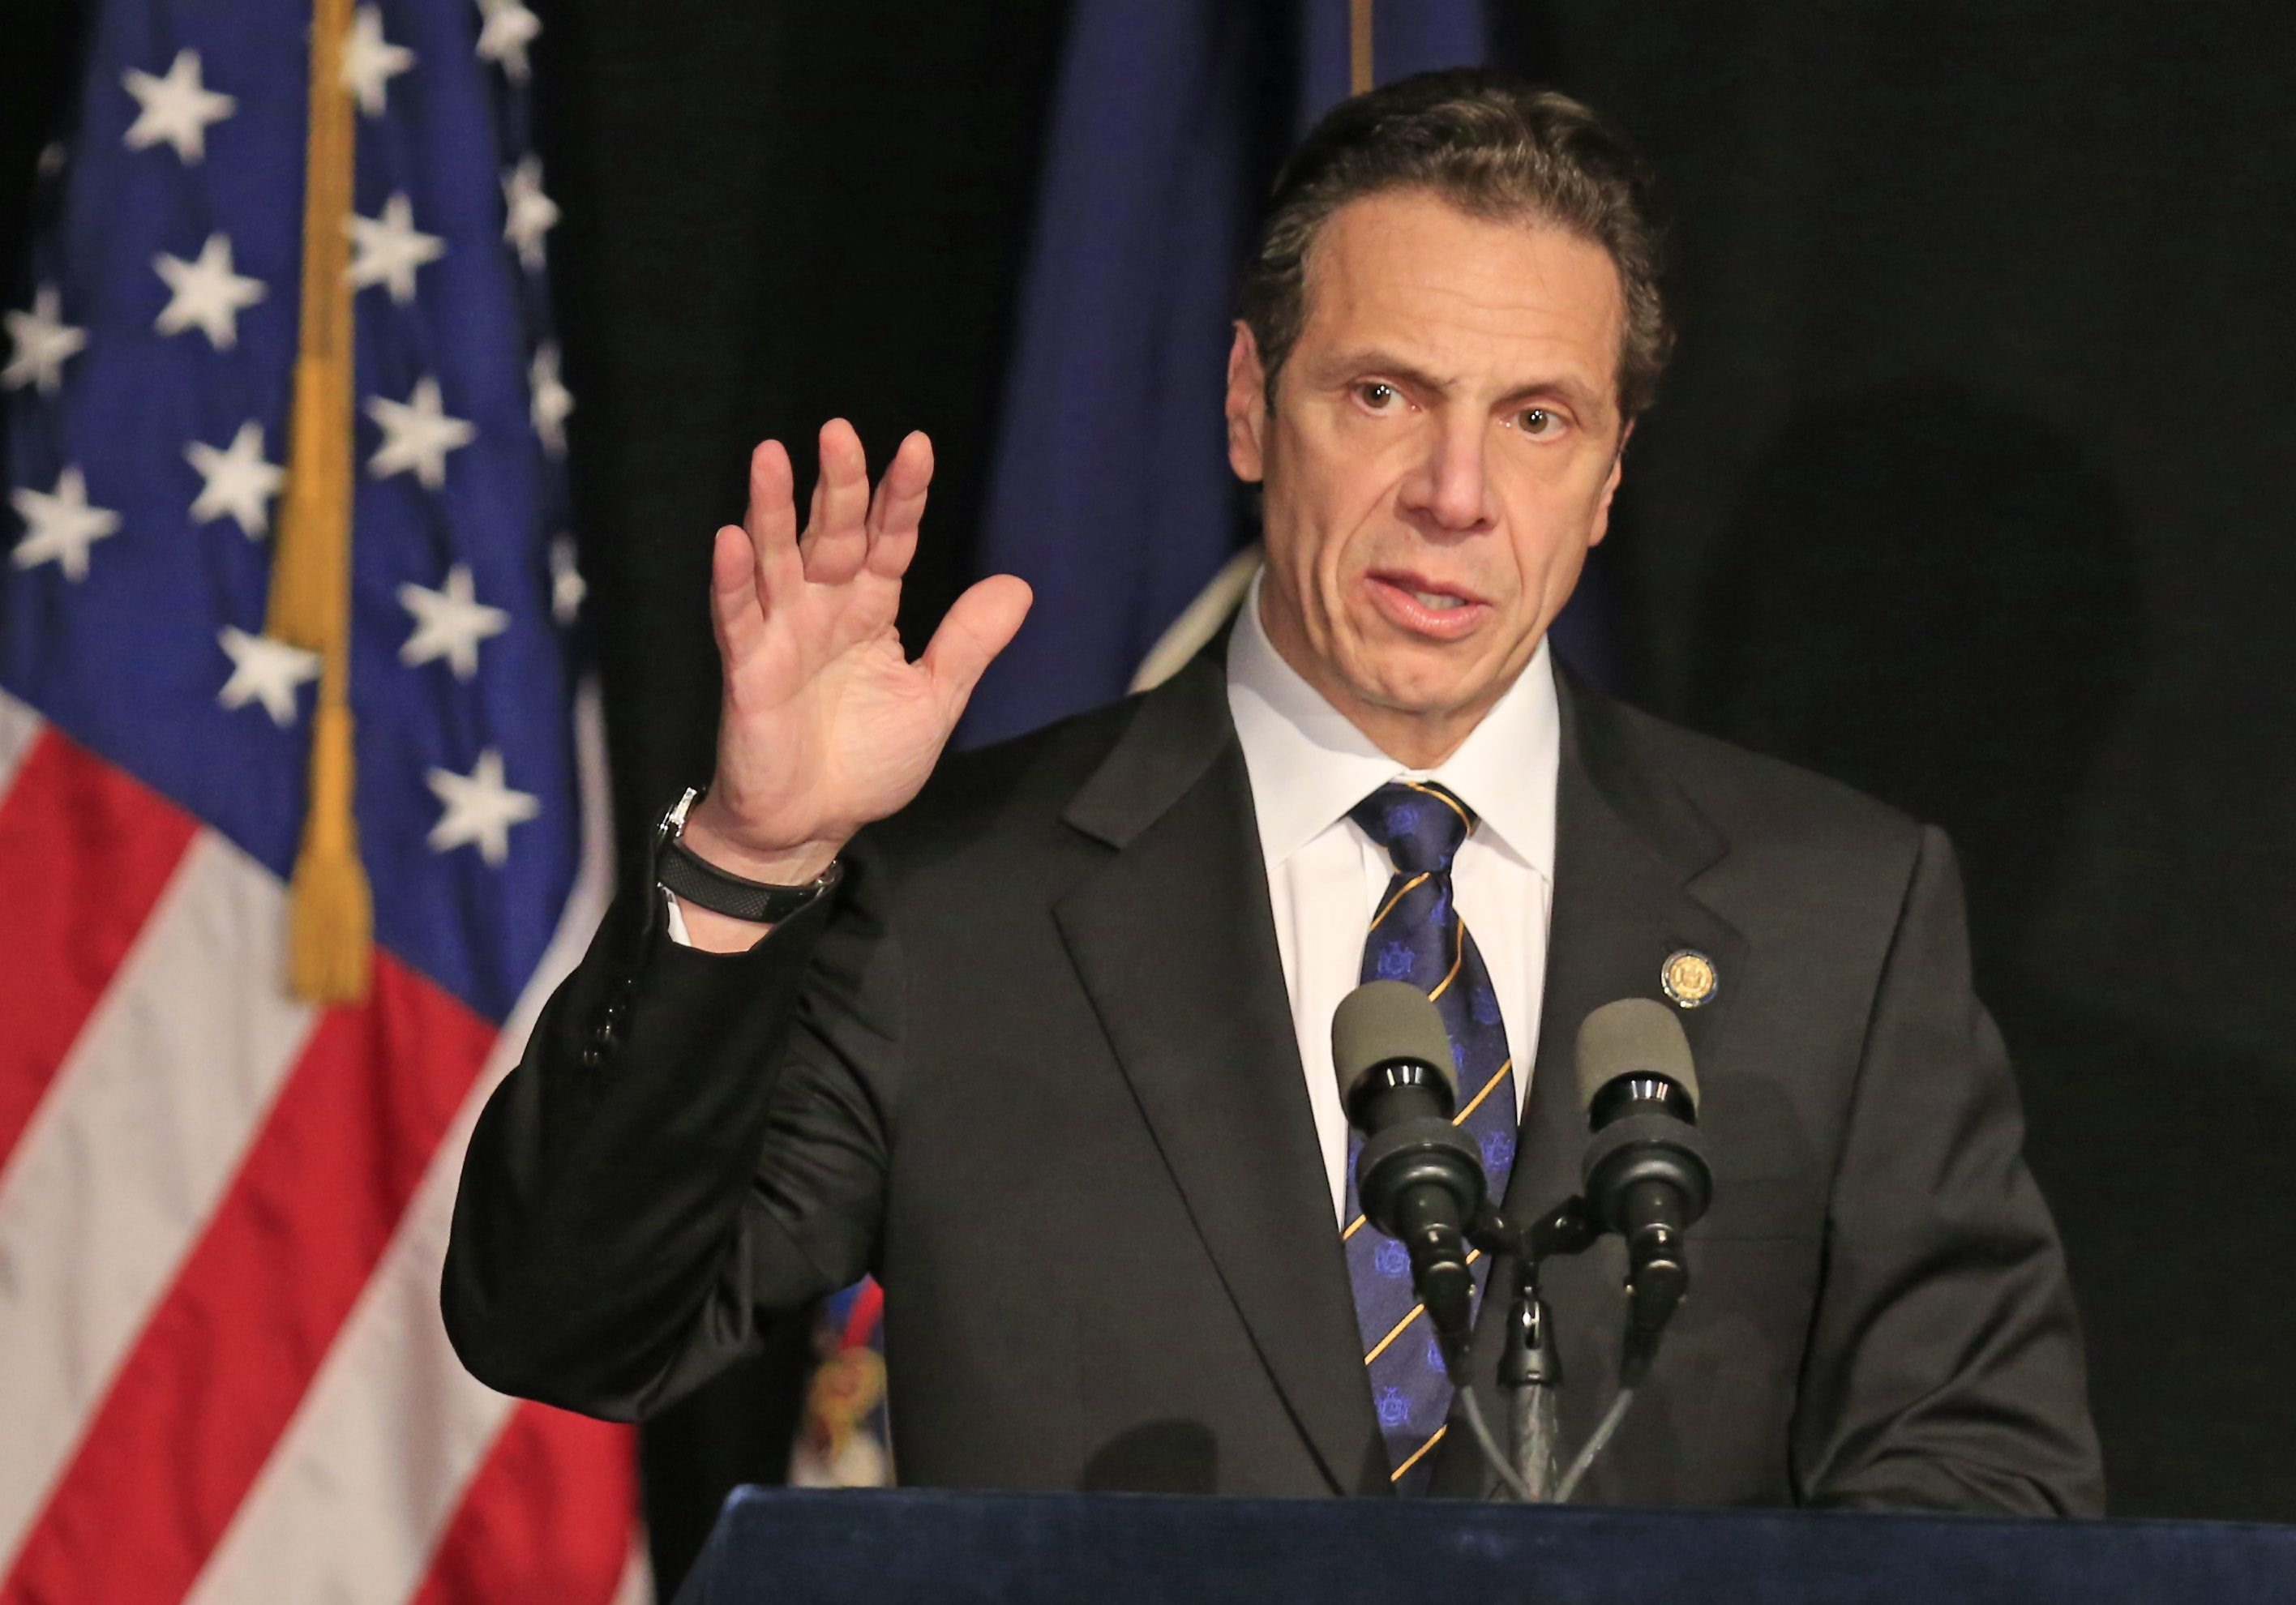 New York Gov. Andrew Cuomo recently retreated from demanding tough education reforms that were opposed by teachers.